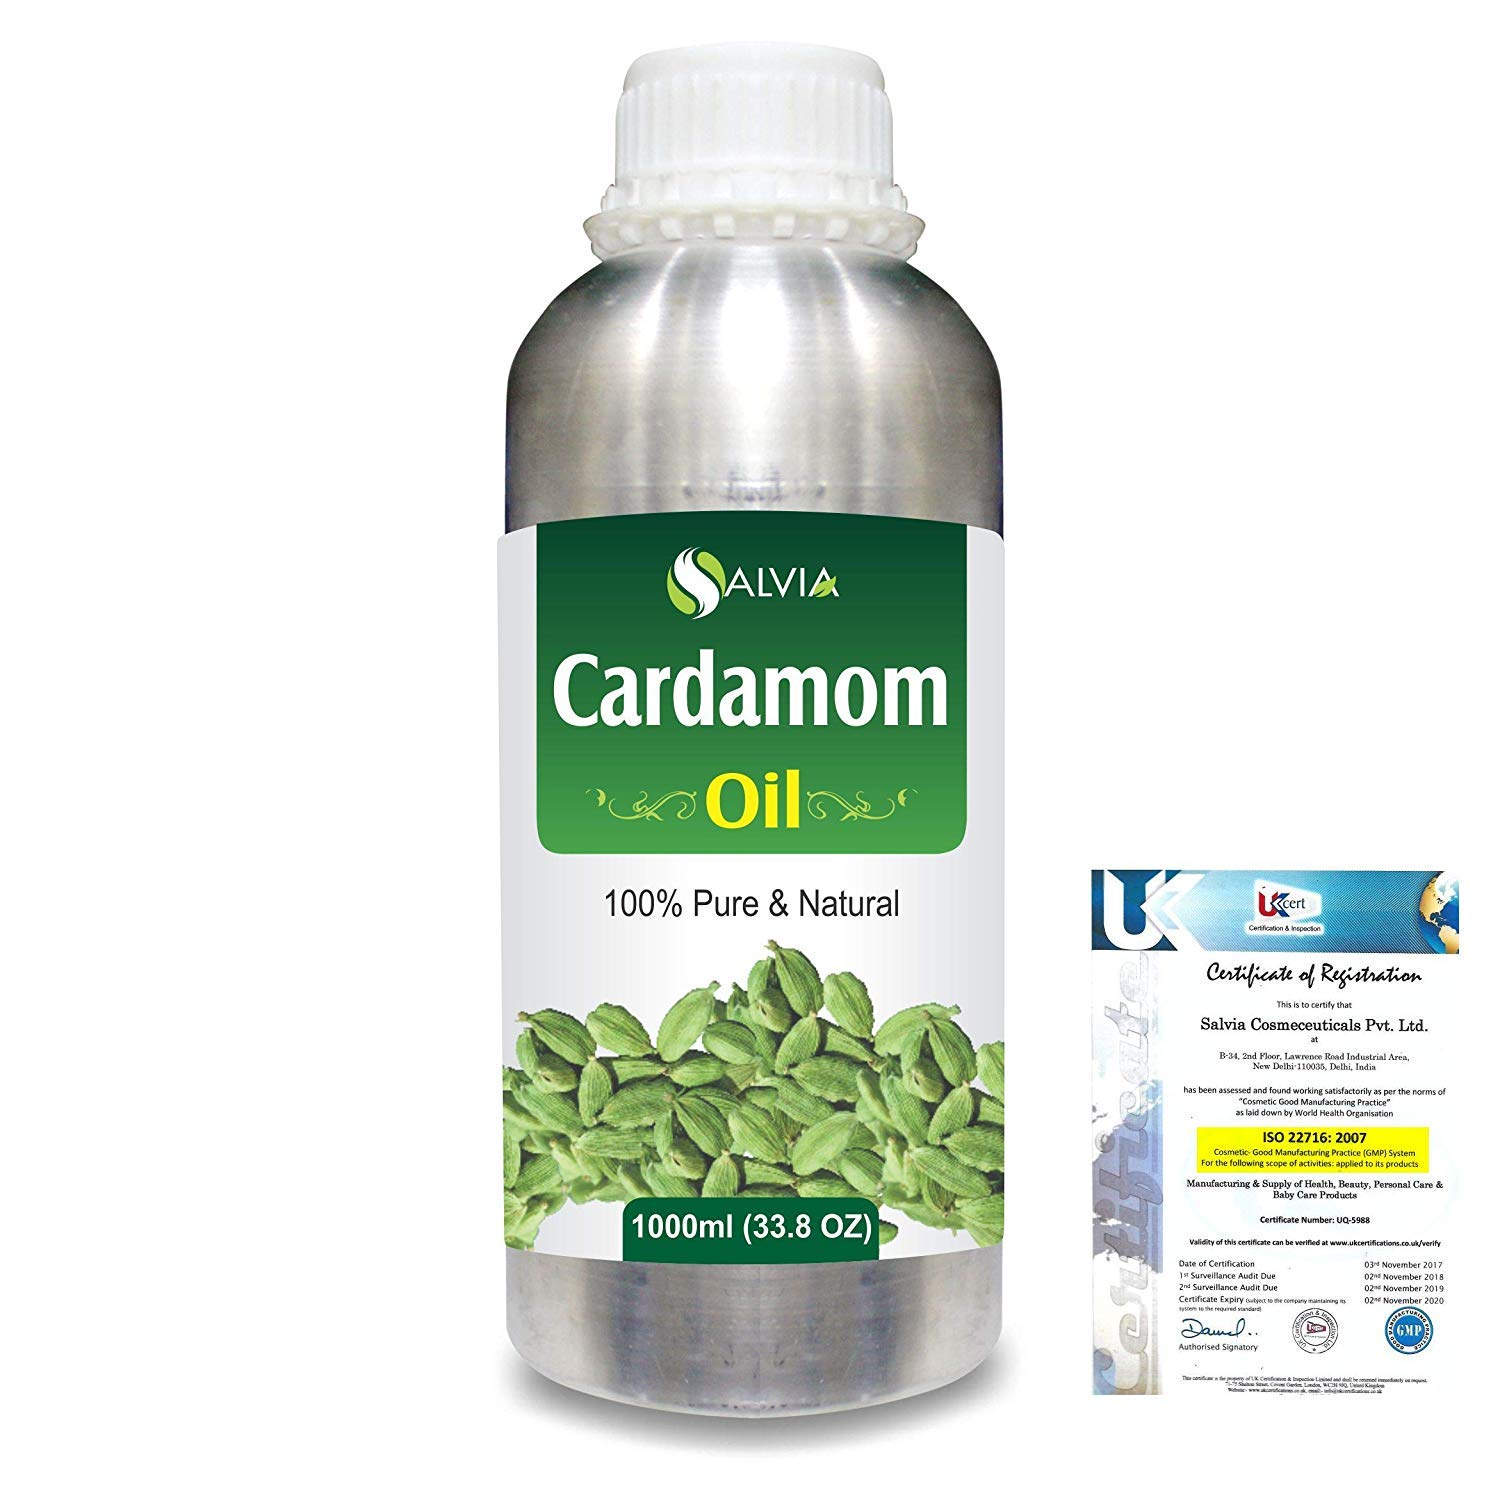 Cardamom (Elettaria cardamomum) Essential Aromatherapy Therapeutic Uncut Undiluted Oil 1000ml/33.8fl oz Express Shipping